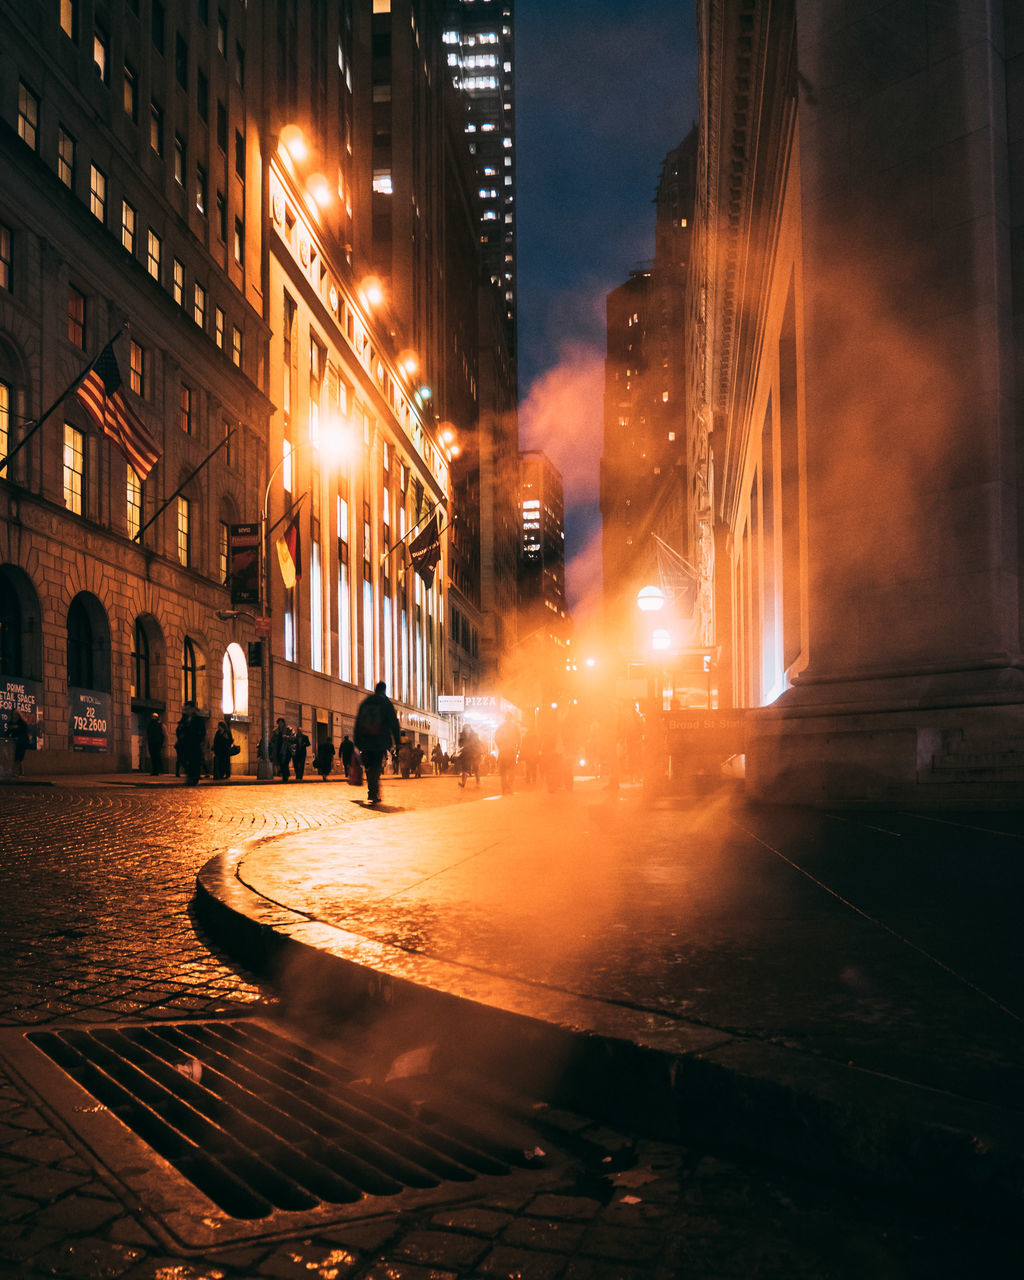 architecture, building exterior, built structure, illuminated, night, water, street, city, outdoors, wet, real people, transportation, long exposure, motion, spraying, men, sky, people